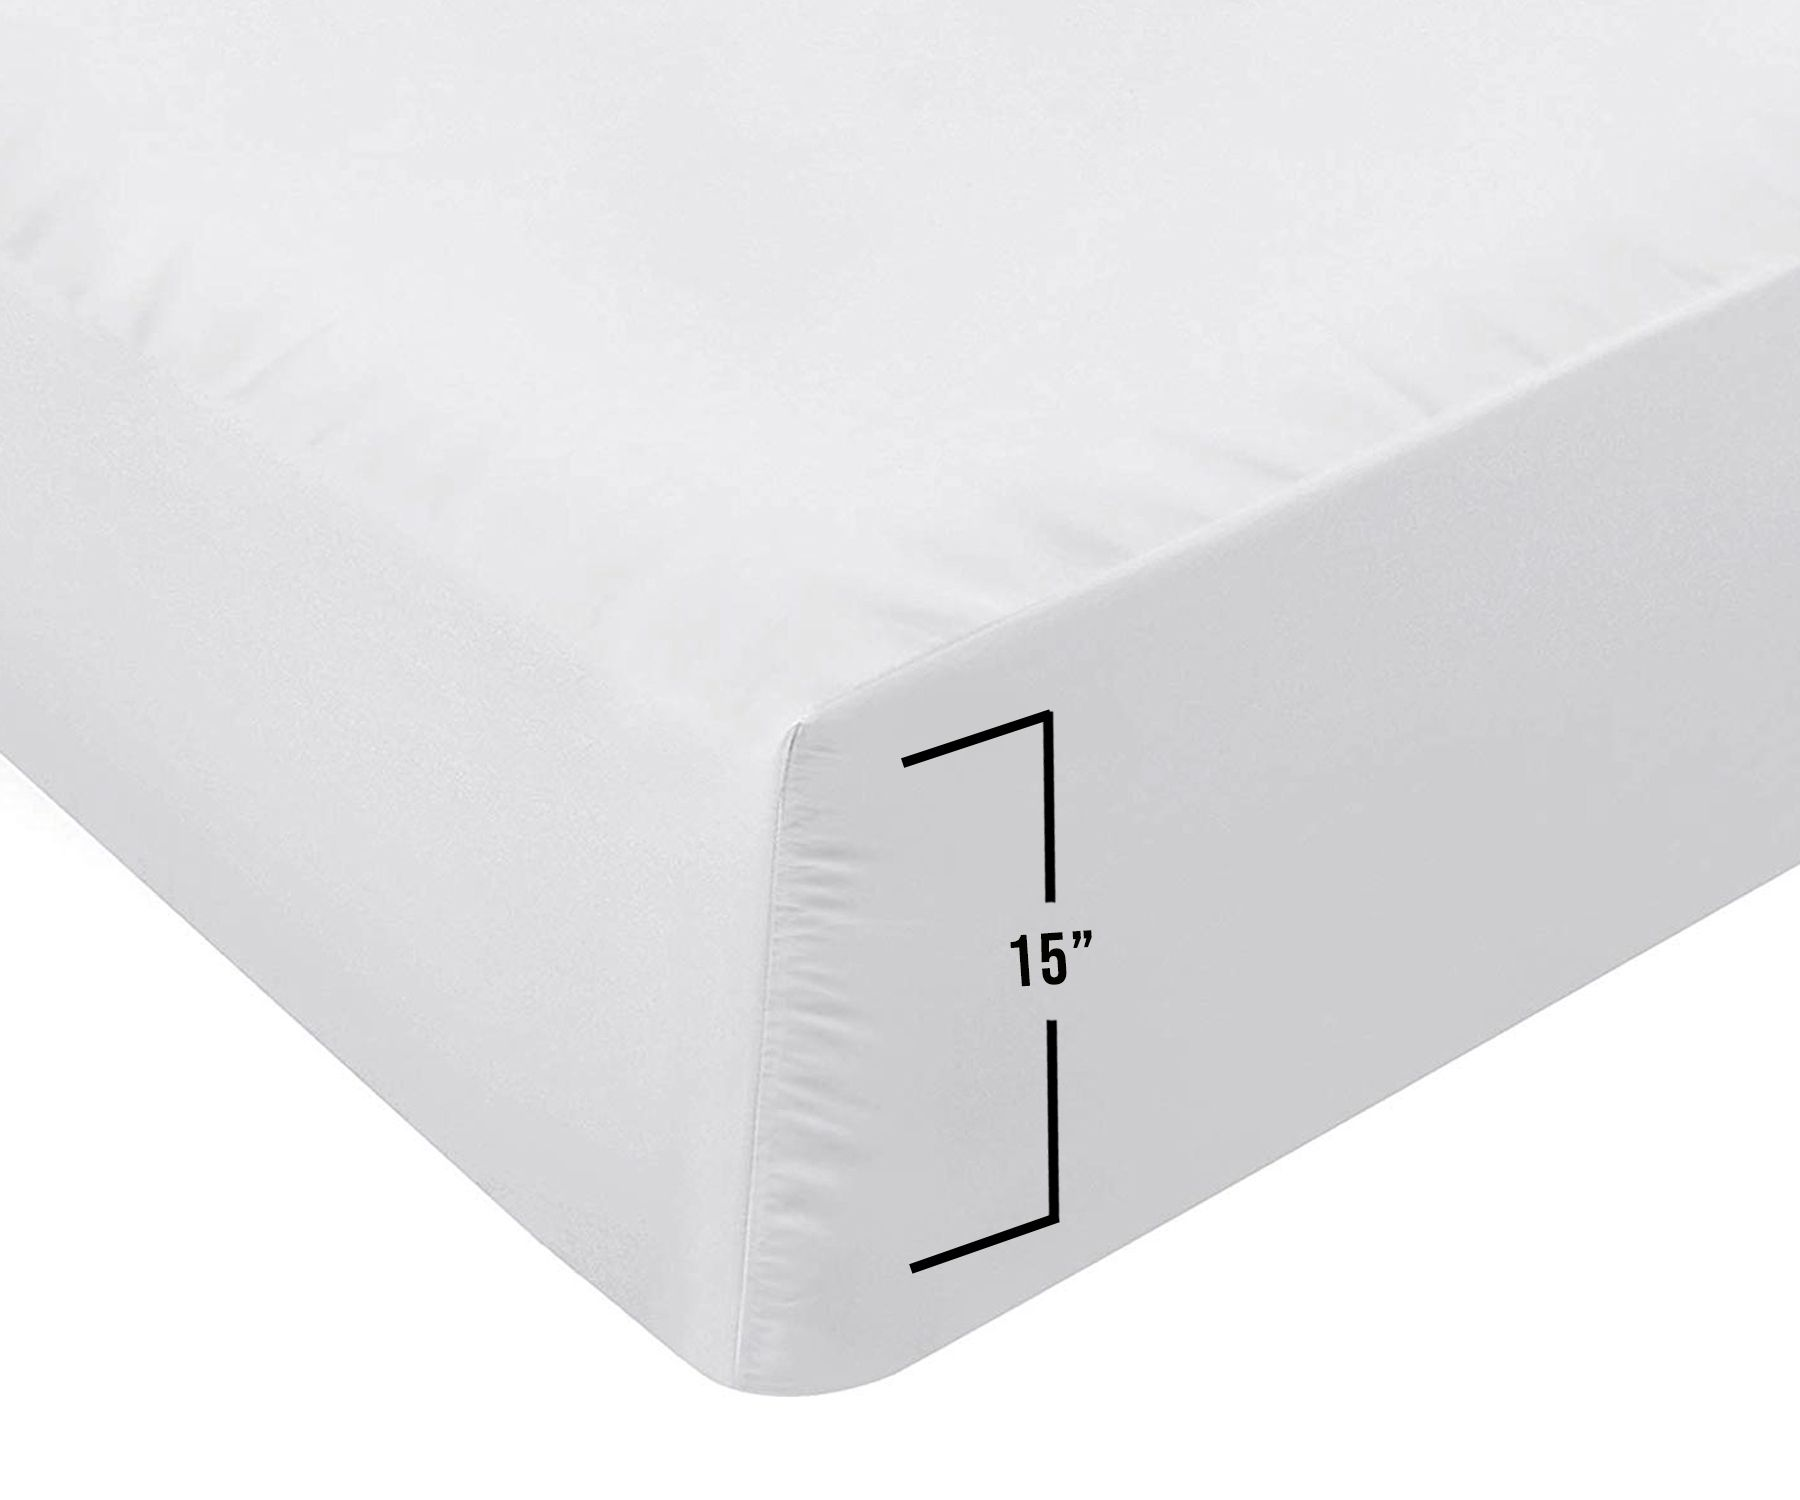 White Fitted Sheet Fitted Bed Sheets Queen Sheets Cotton Fitted Sheets Queen size deep pocket fitted sheets